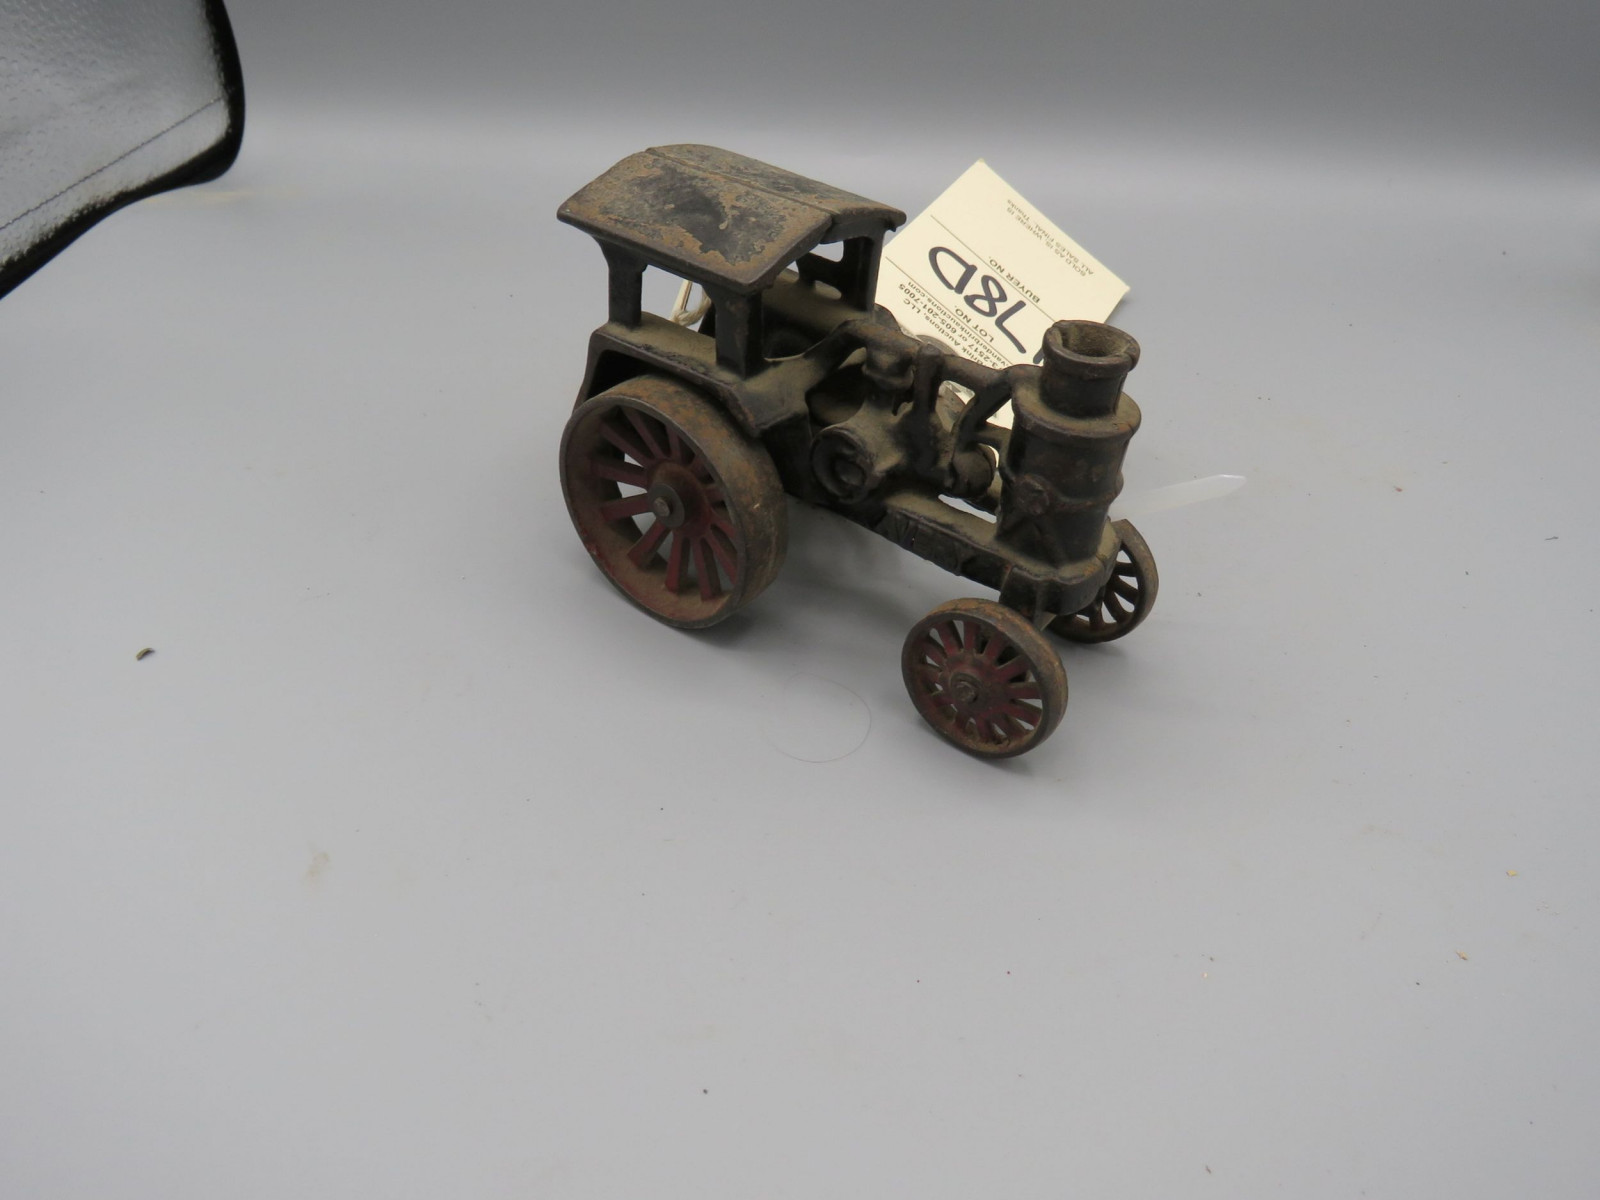 Arcade Cast Iron Fordson Tractor Approx. 4 inches inches - Image 2